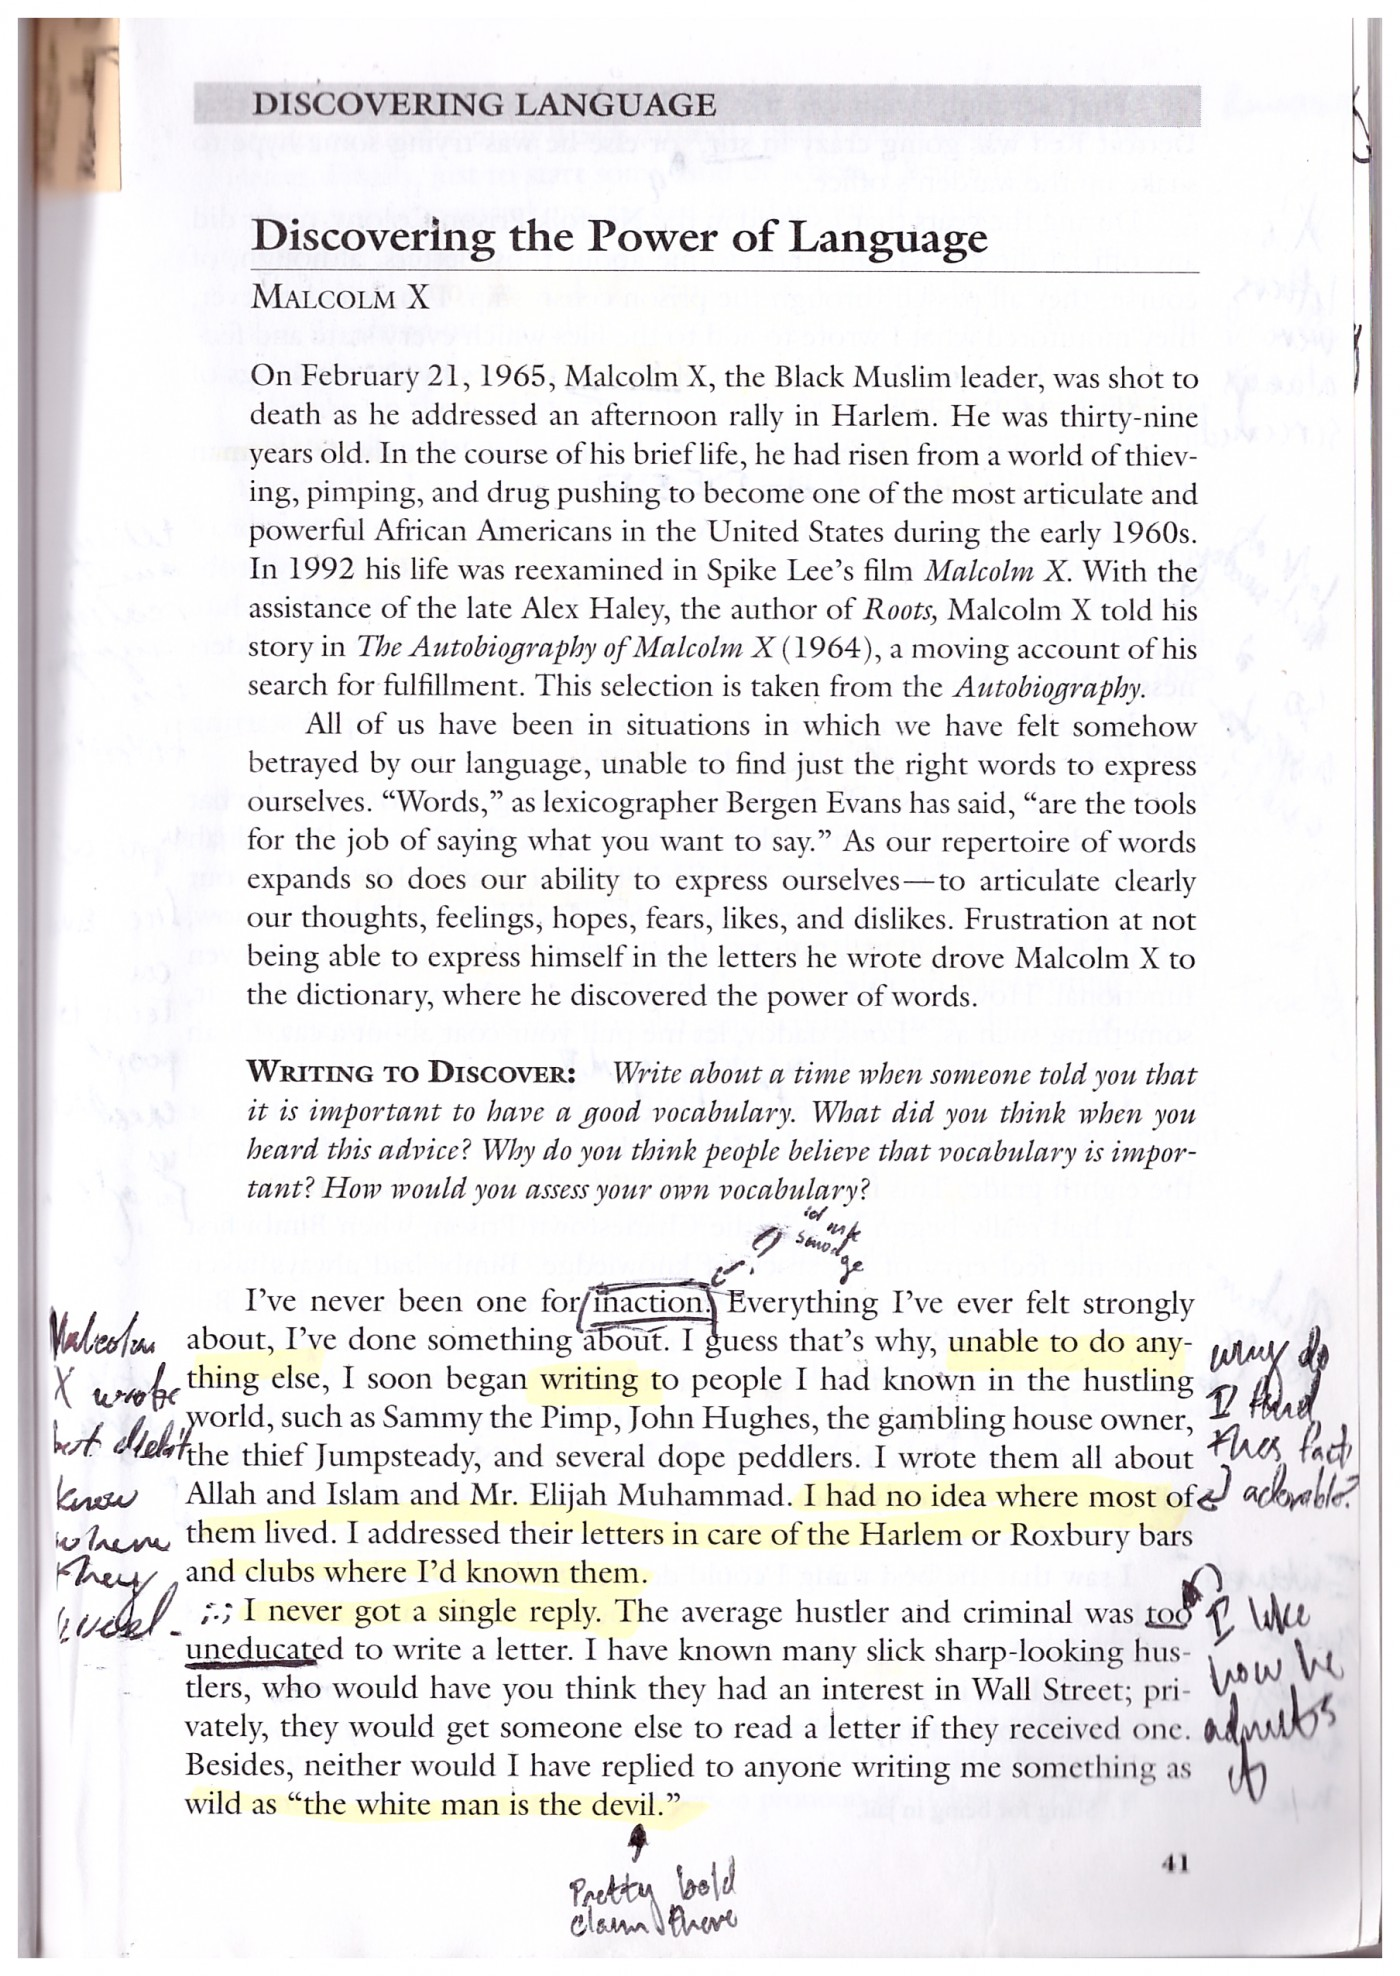 002 Malcolm X Essay Example Page Stunning Learning To Read Questions Summary 1400